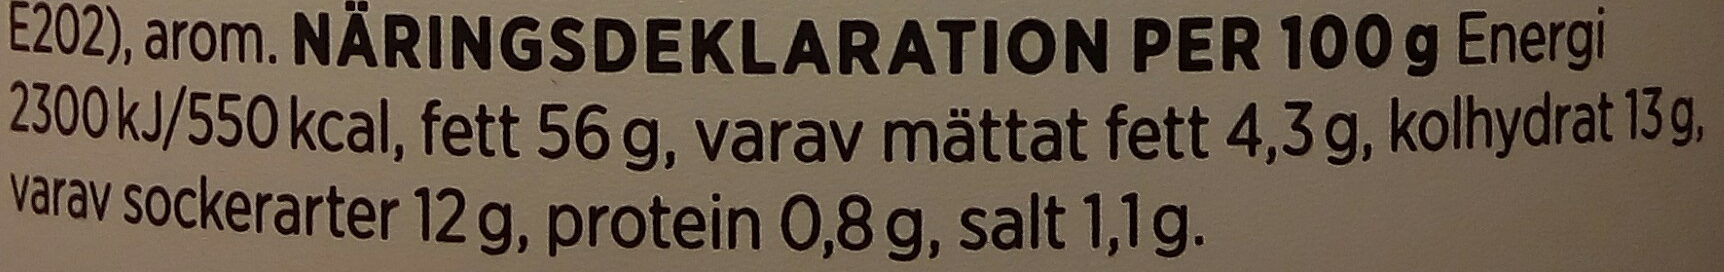 ICA Mango-currysås - Nutrition facts